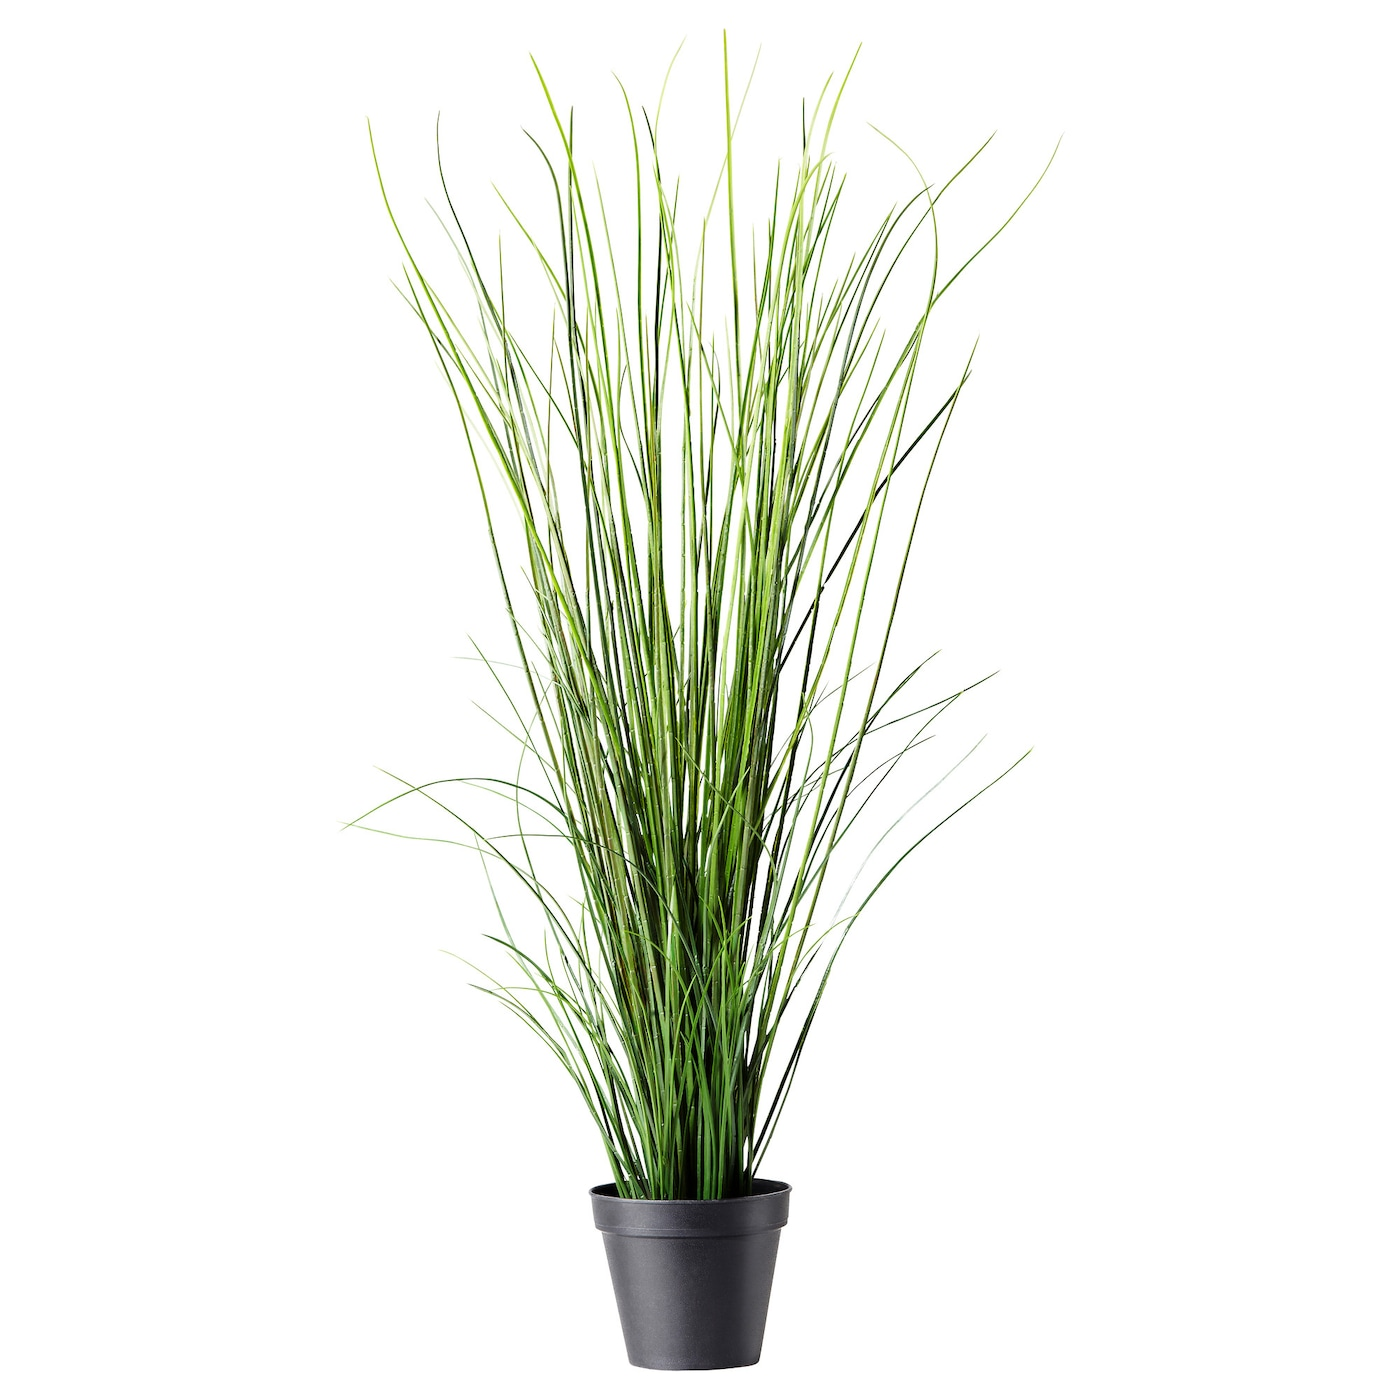 Fejka artificial potted plant grass 17 cm ikea for Ikea plantes